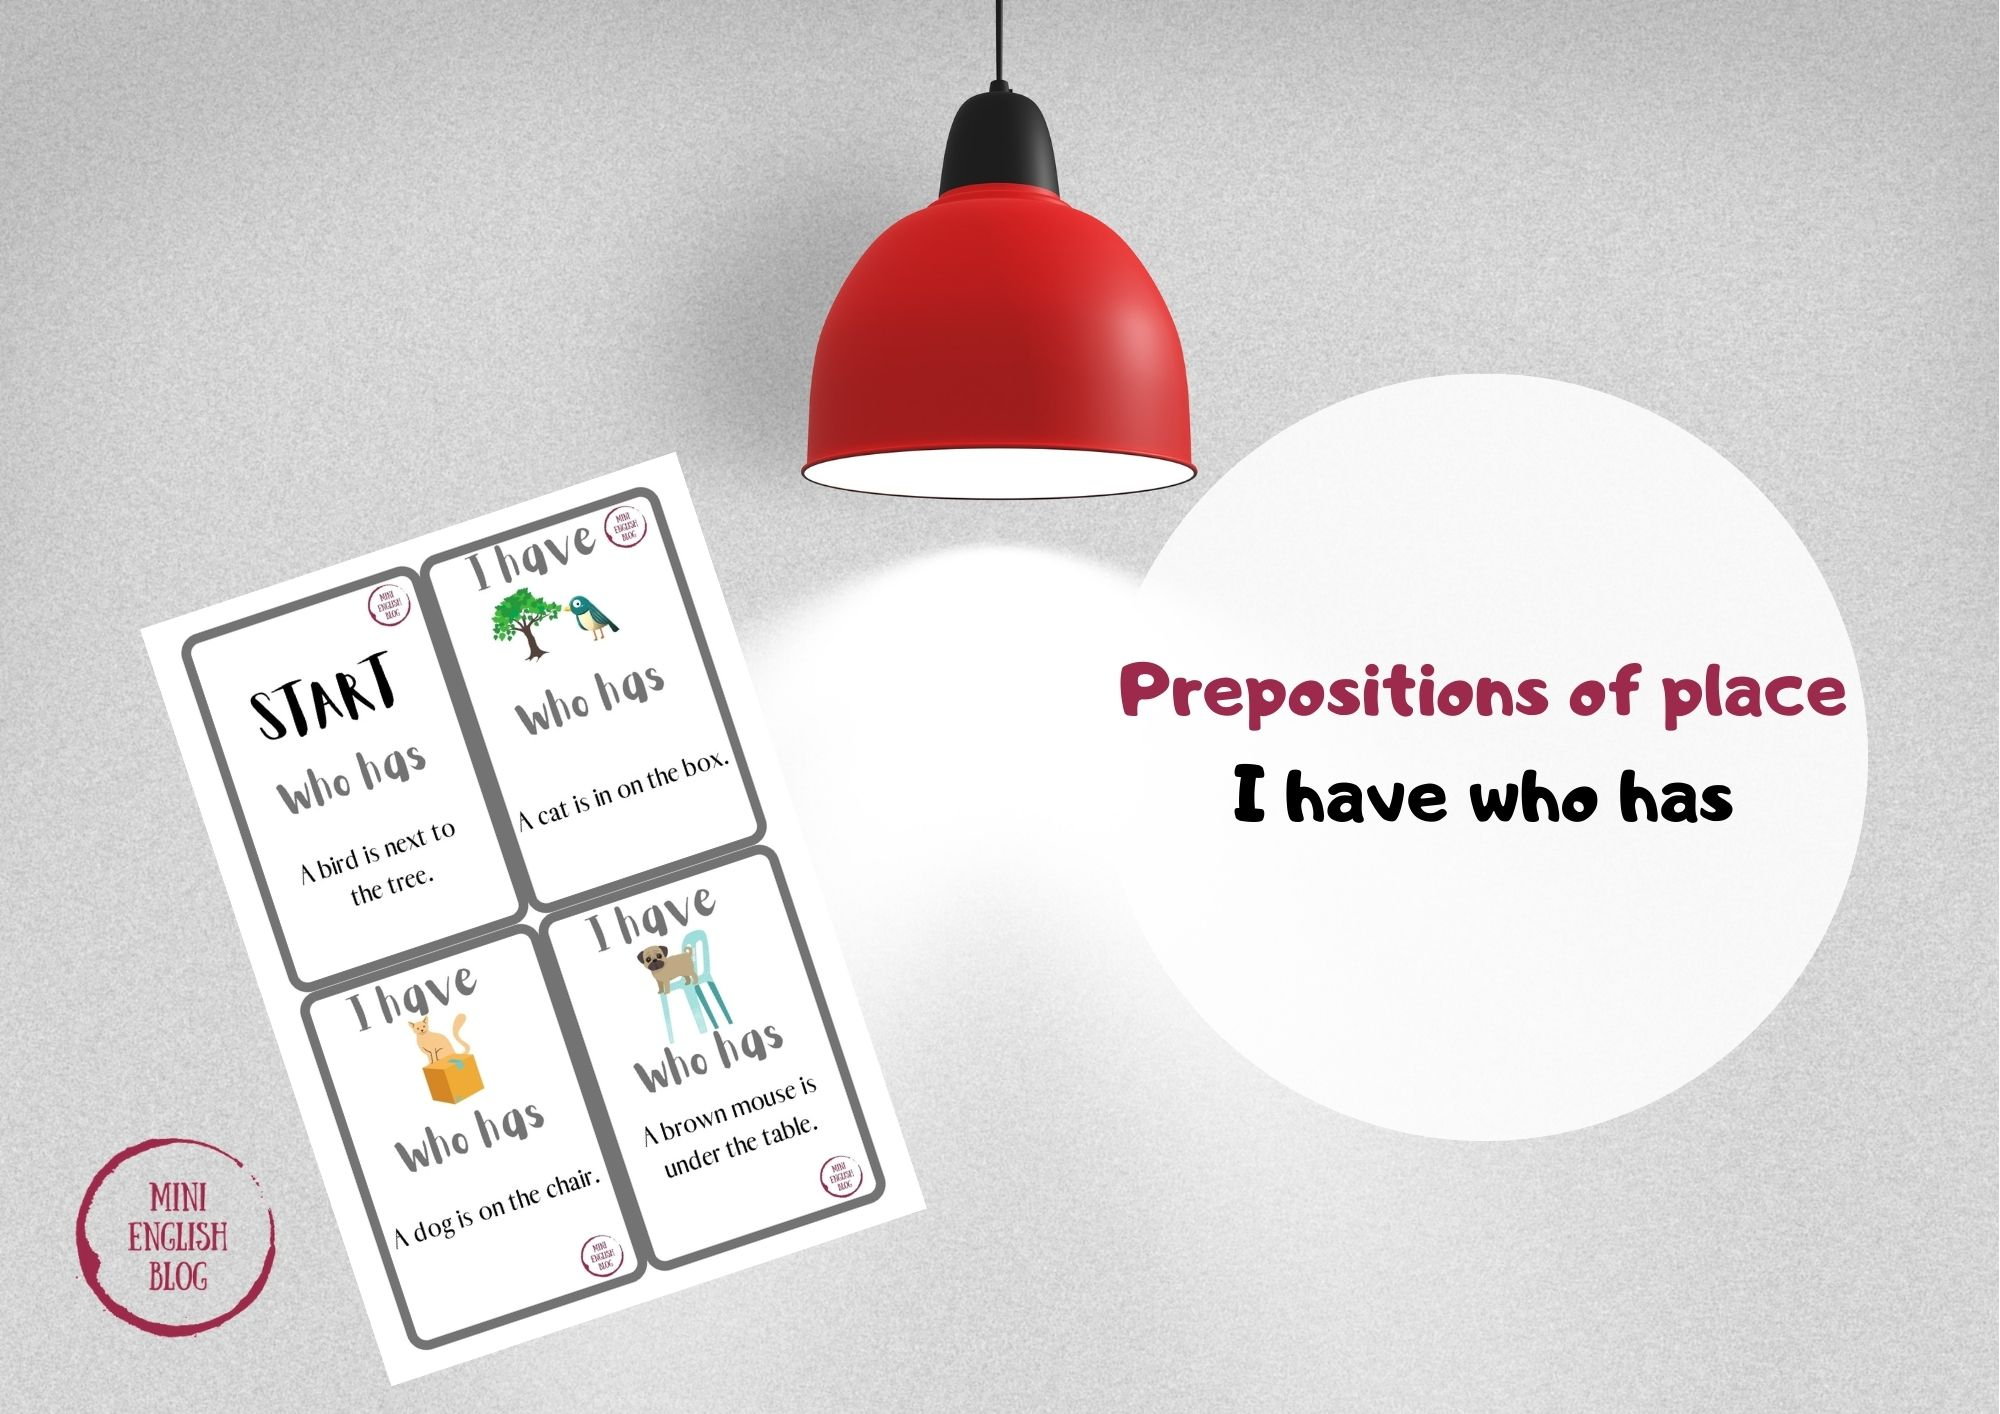 Prepositions of place - gra I have who has